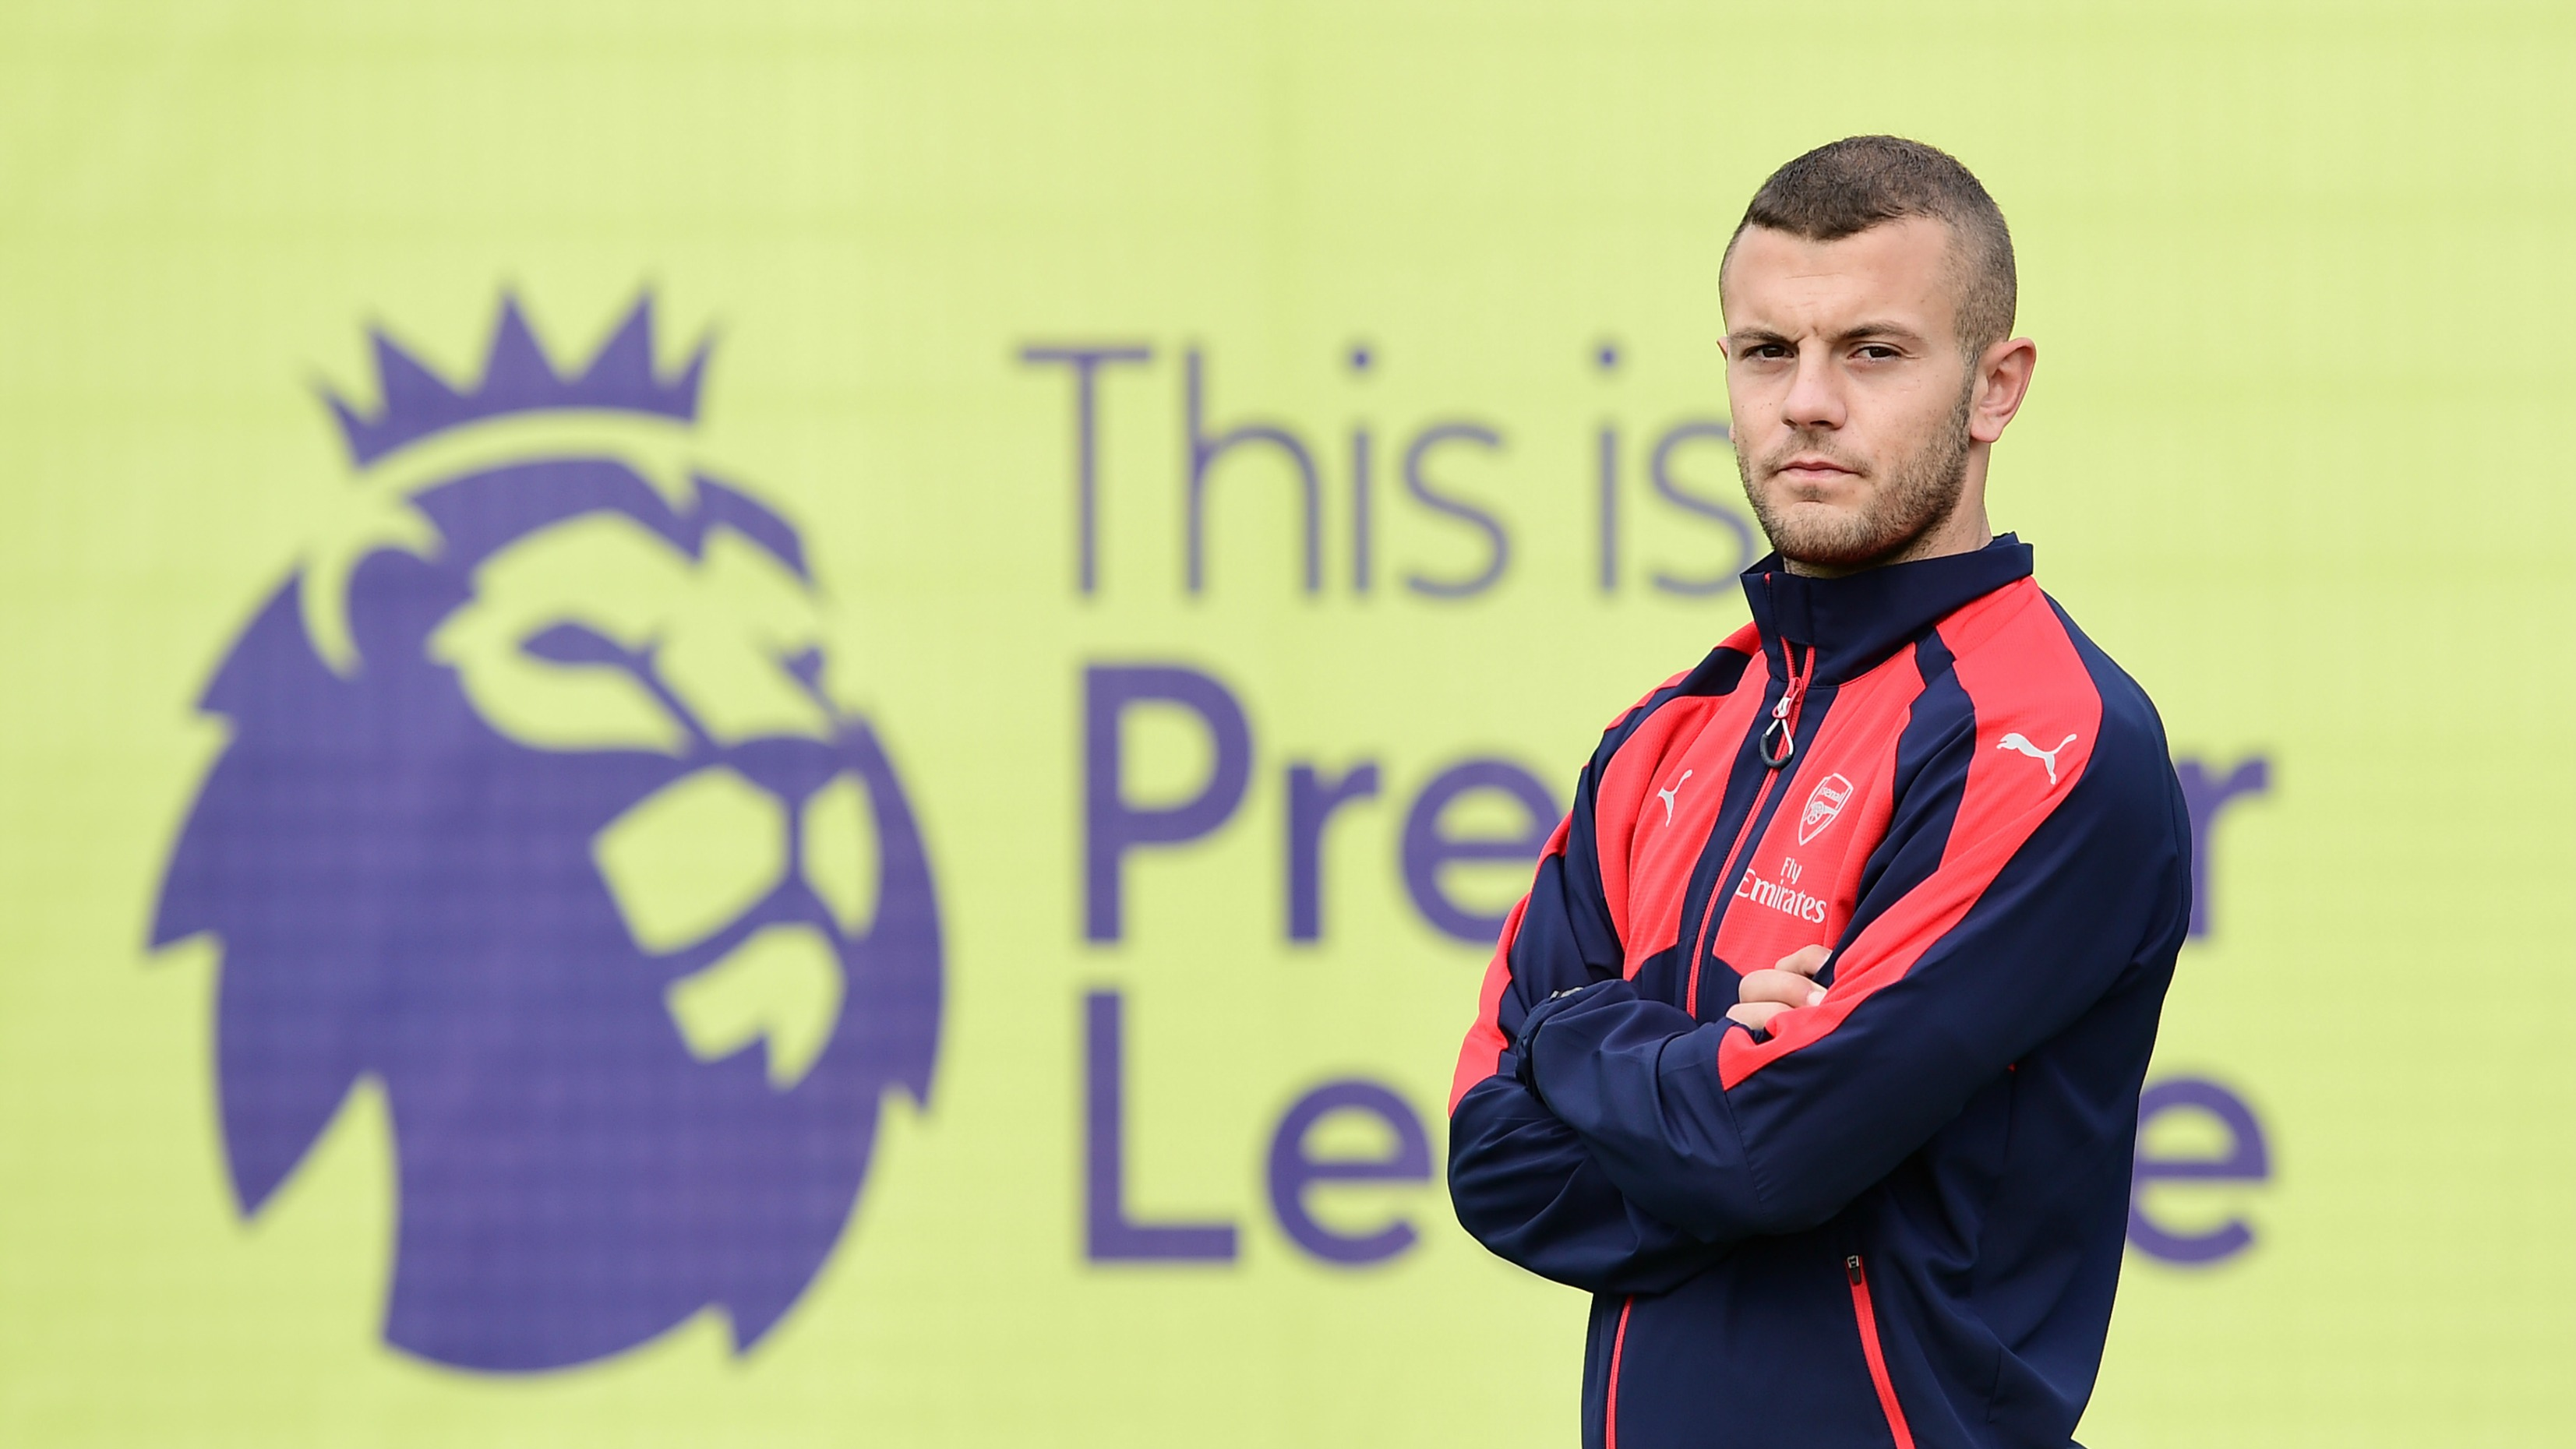 It's up to Jack Wilshere to save his career now